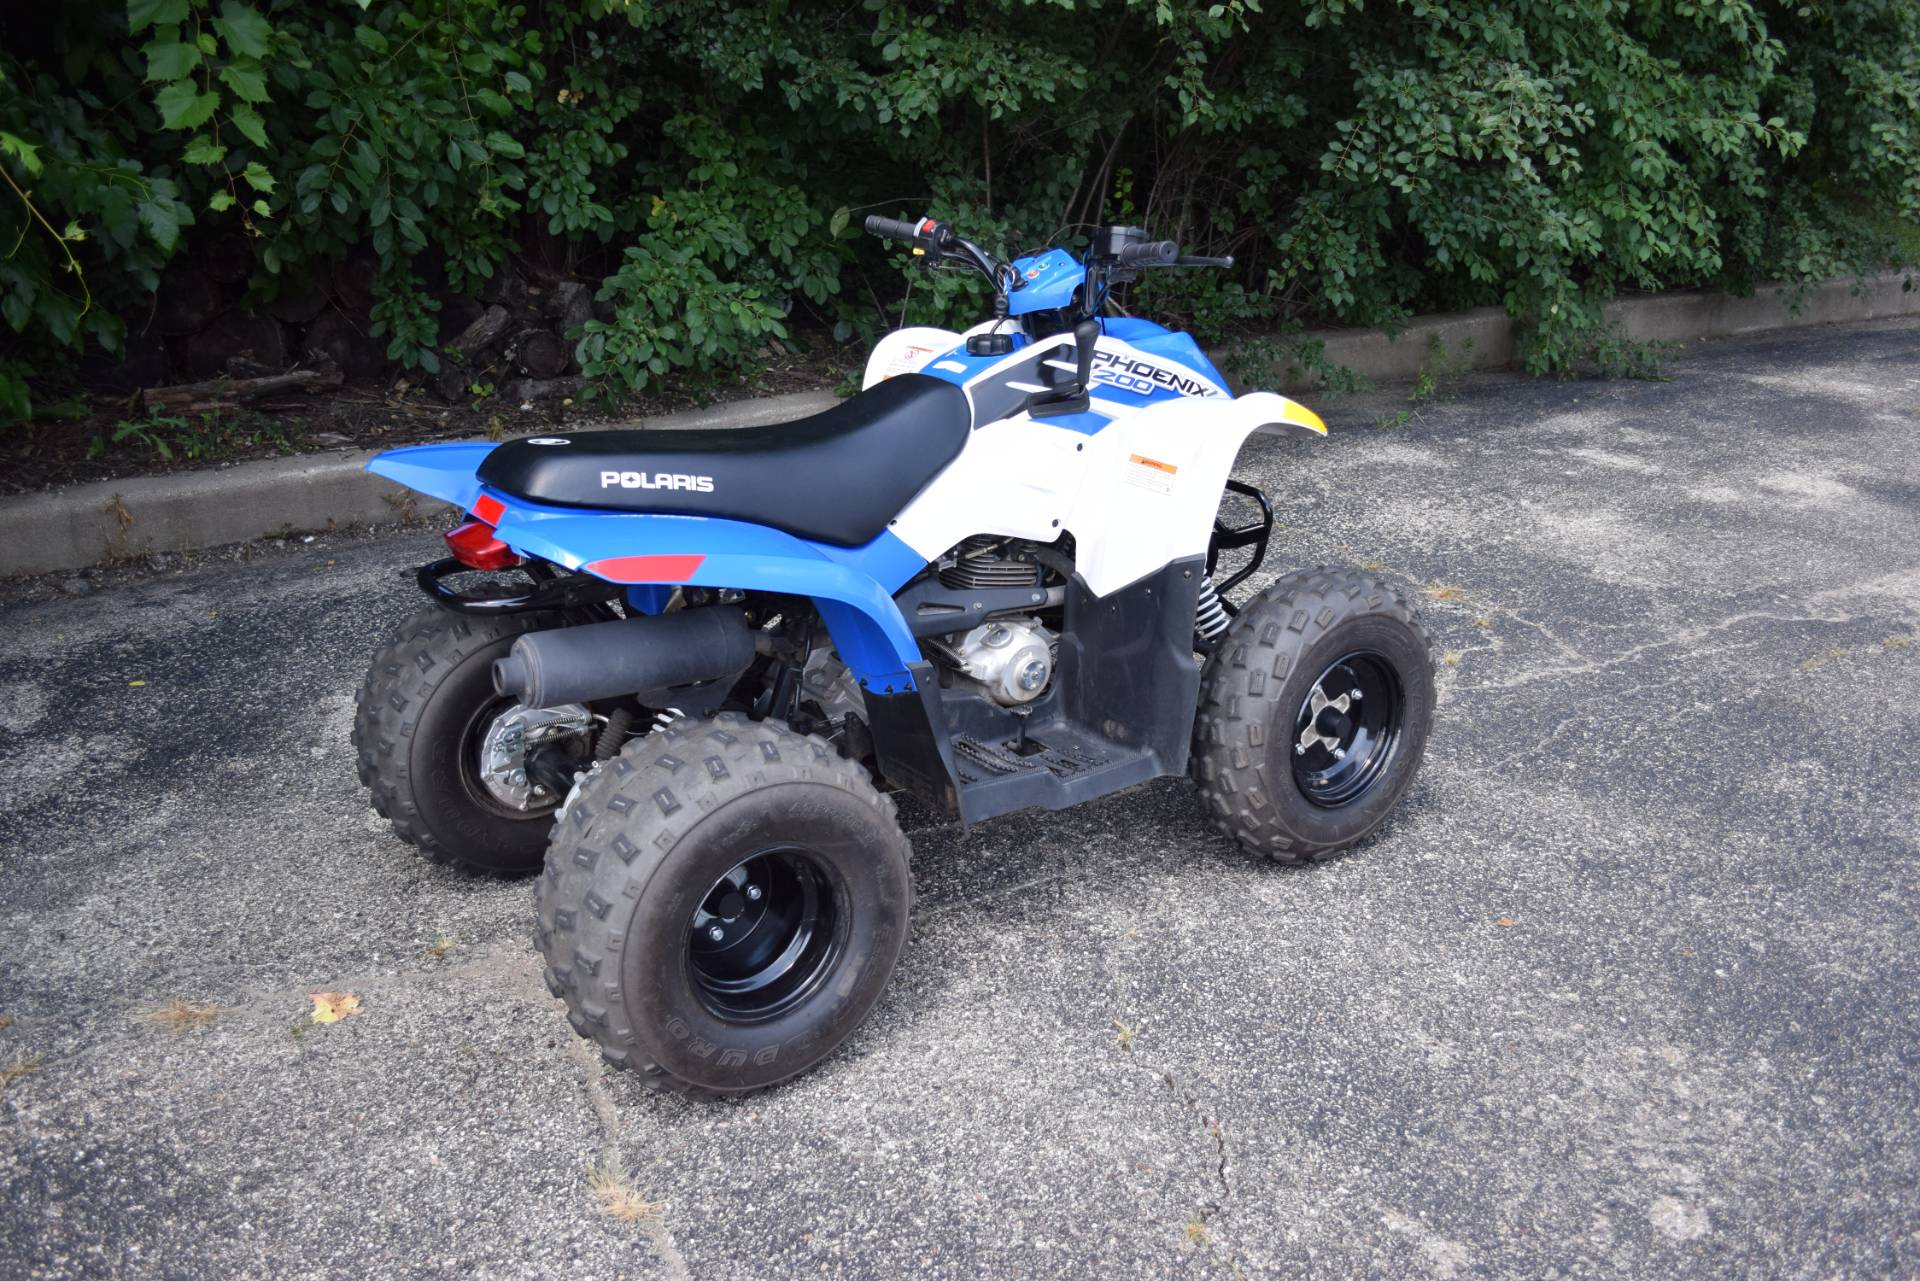 2016 Polaris Phoenix 200 in Wauconda, Illinois - Photo 8